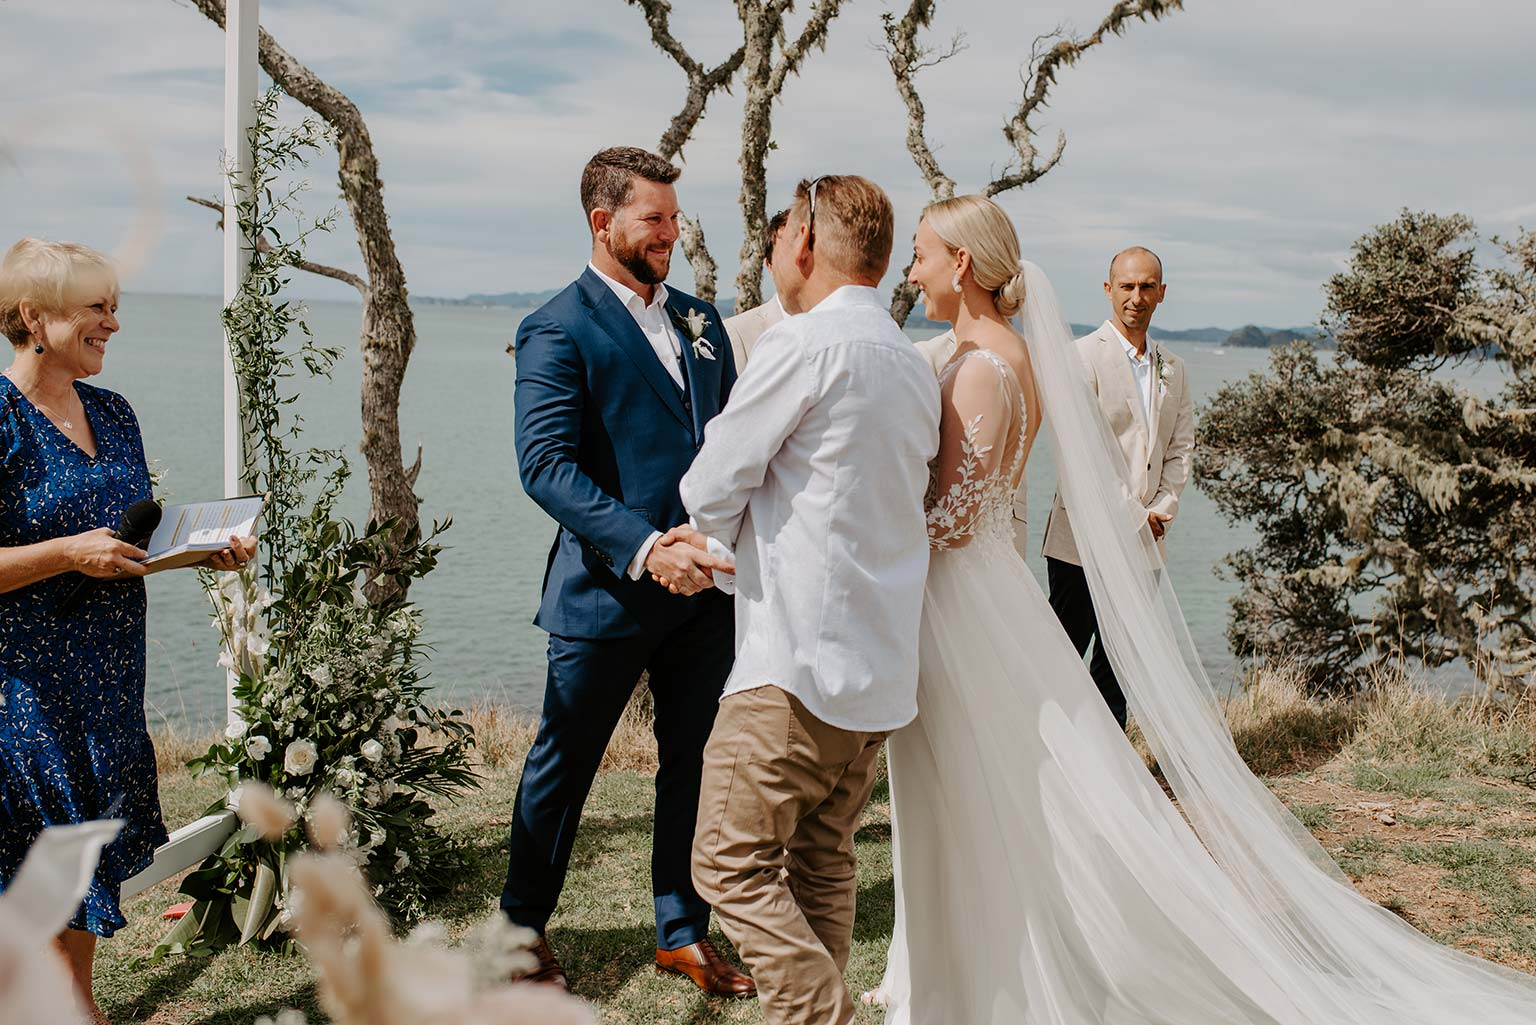 Vinka Design Features Real Weddings - bride and groom at outdoor ceremony next to the ocean - wearing a bespoke Makaira gown with silk-chiffon and tulle overskirt giving her a beautiful train which could be removed later on to reveal a floor length party dress